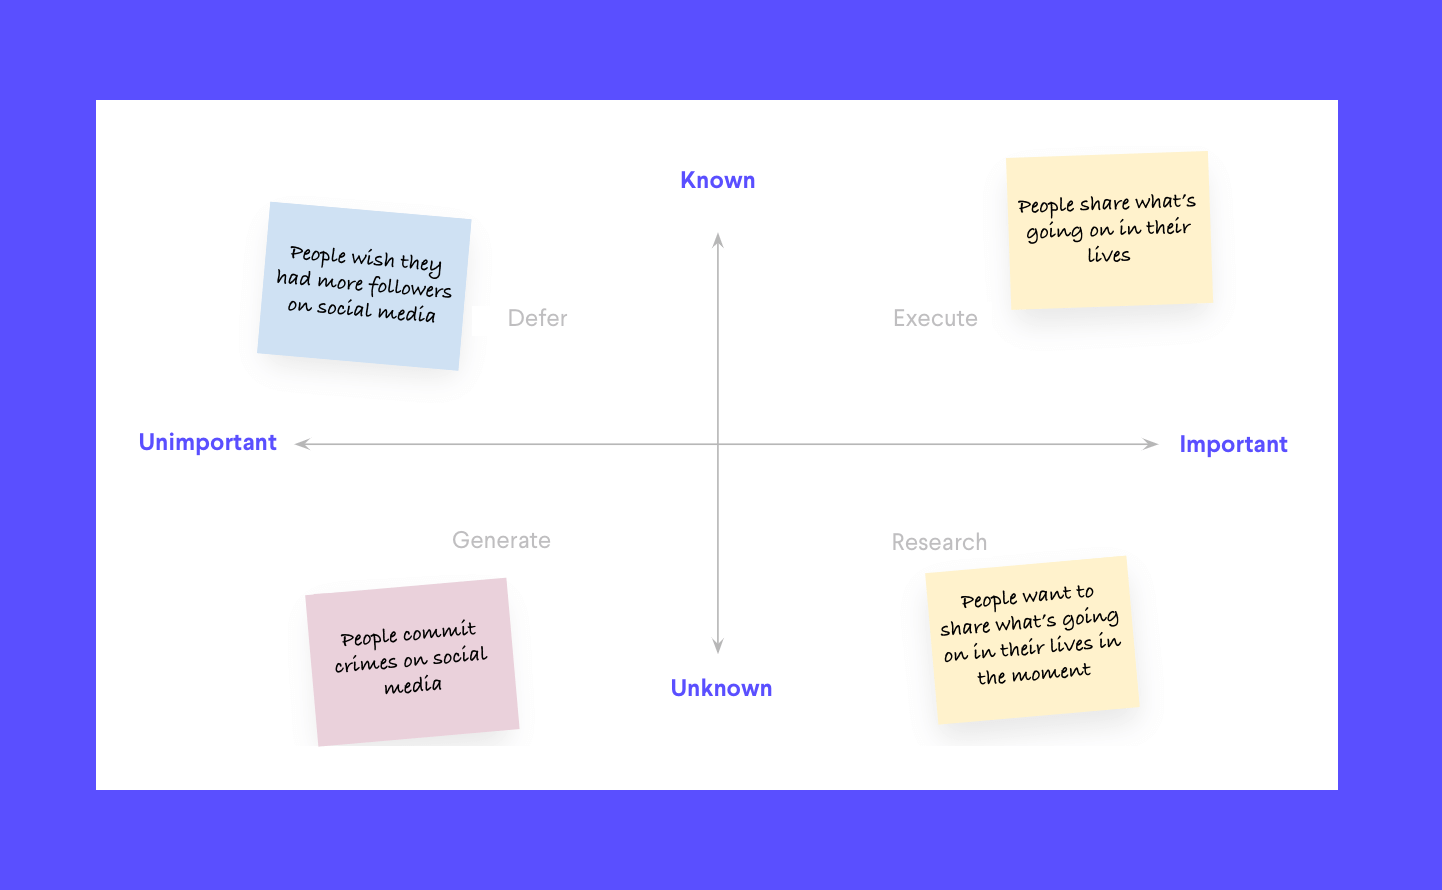 A hypthetical assumption map for Instagram used in the discovery phase